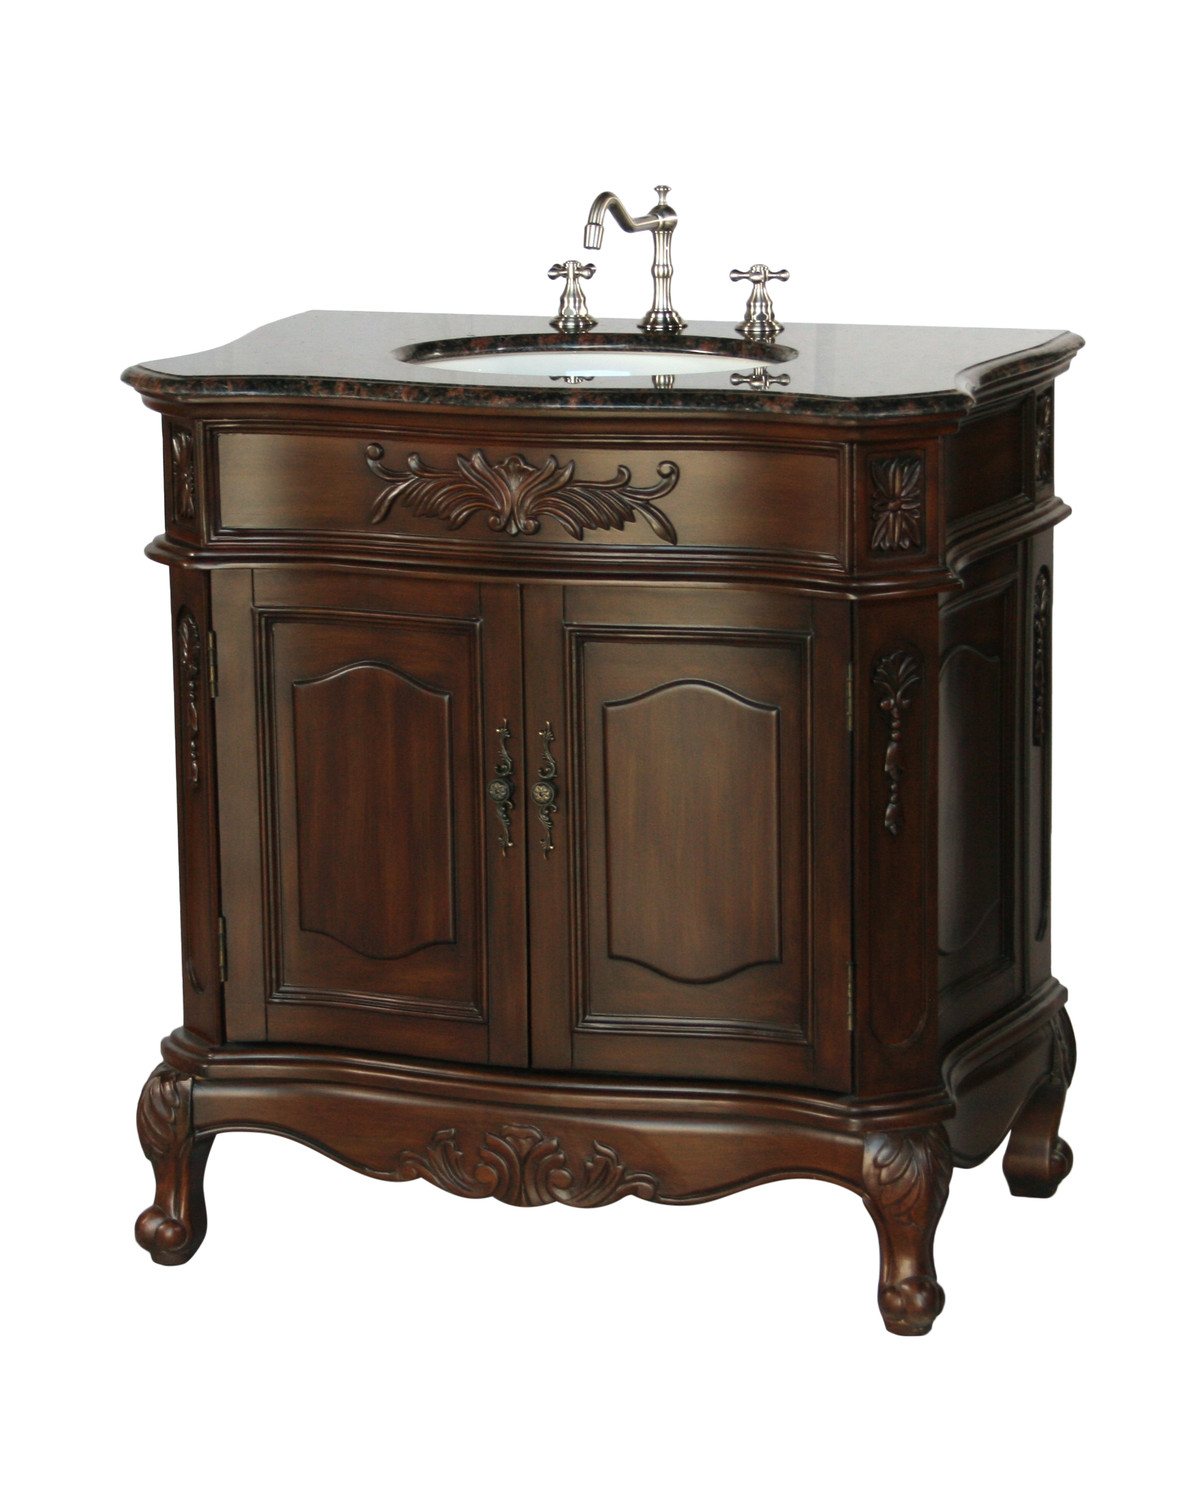 """34"""" Adelina Antique Style Single Sink Bathroom Vanity with Coral Brown Granite Countertop and Walnut Finish"""